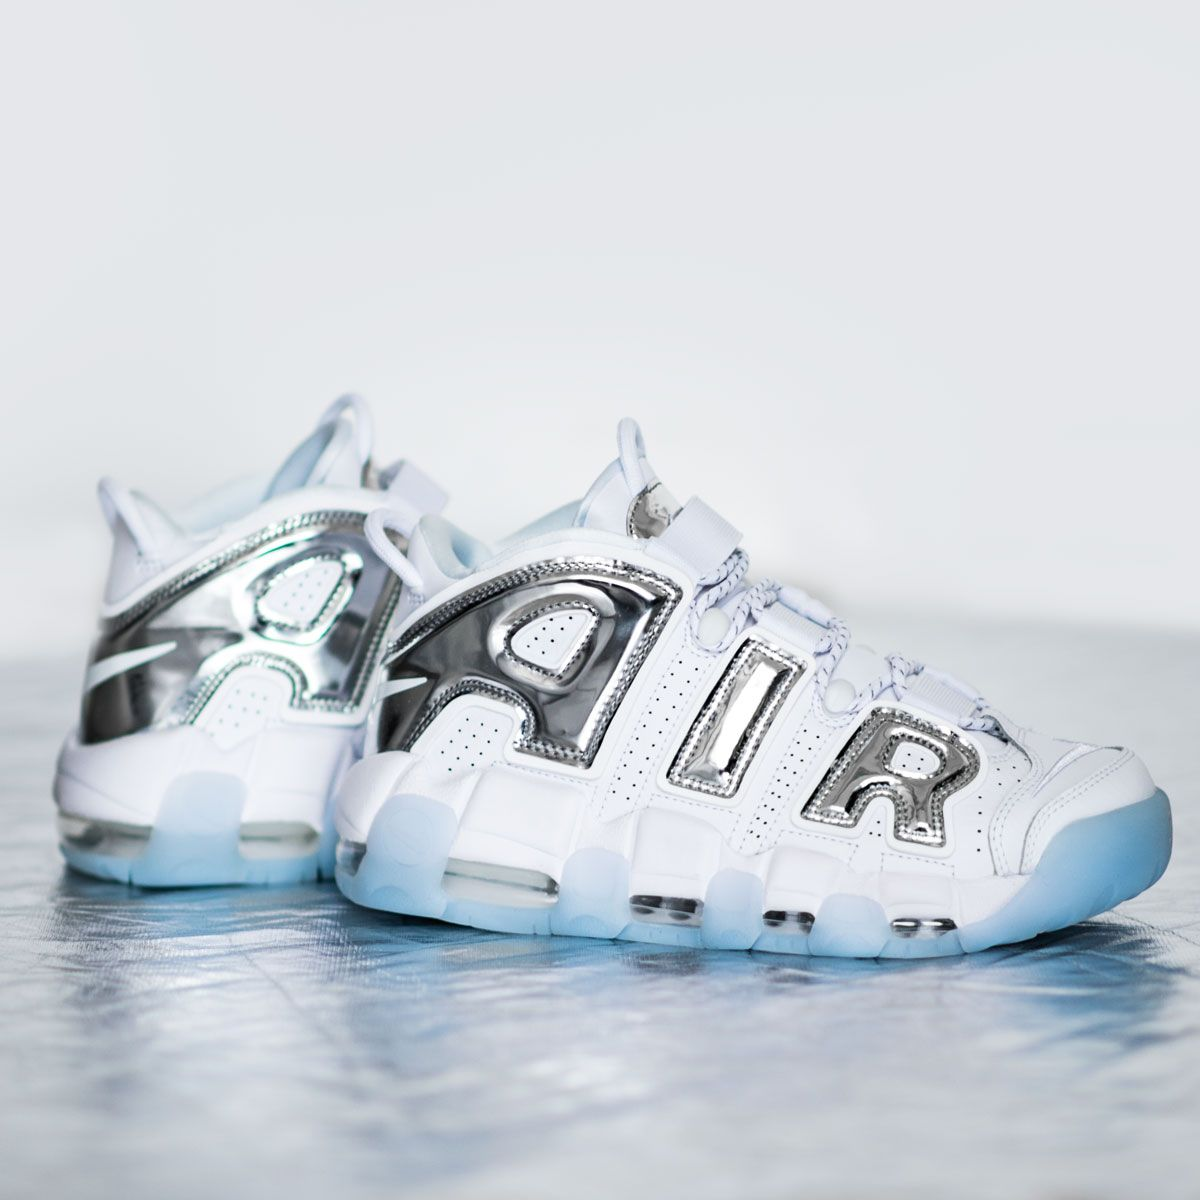 9583d6e7c2984 A new Nike Air More Uptempo for the Ladies is available now! Get these  white beauties with chrome lettering and an ice sole on KICKZ.com and in  selected ...